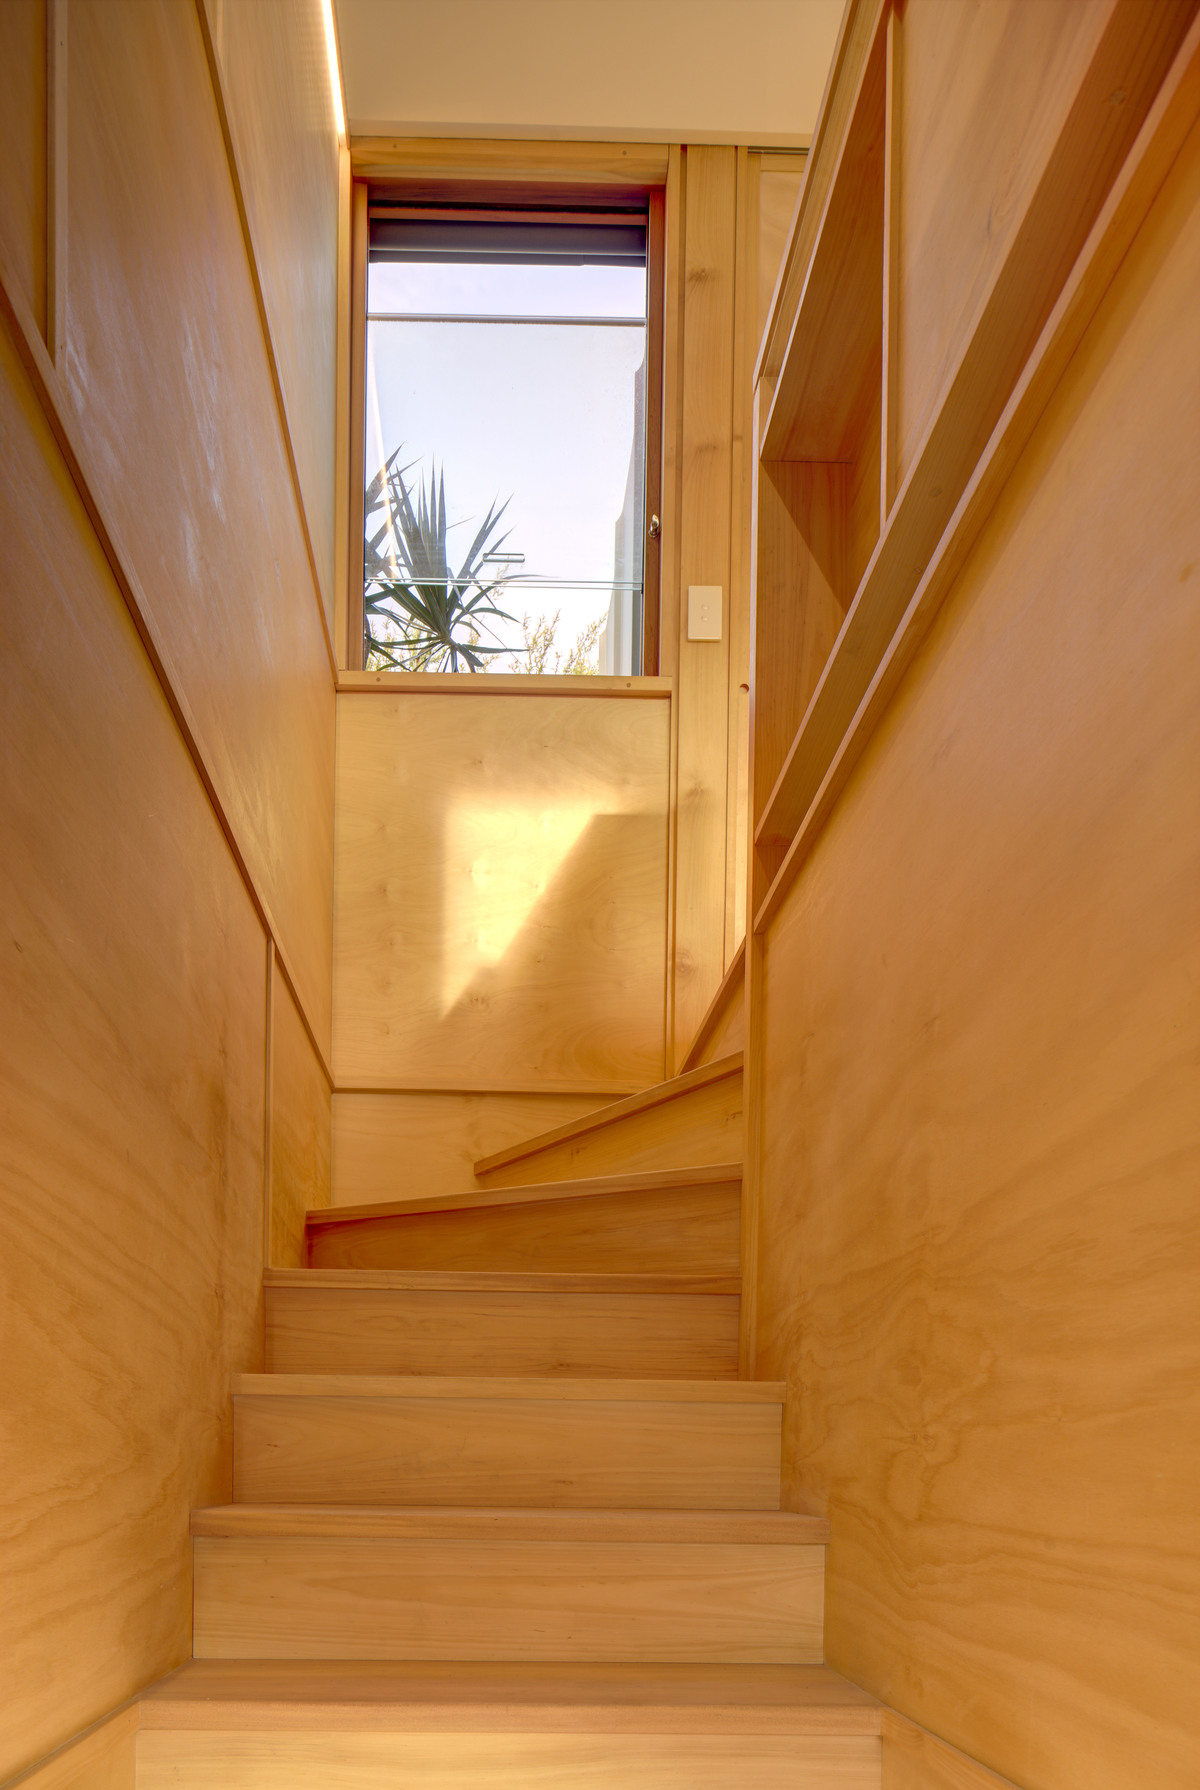 View up the stairs